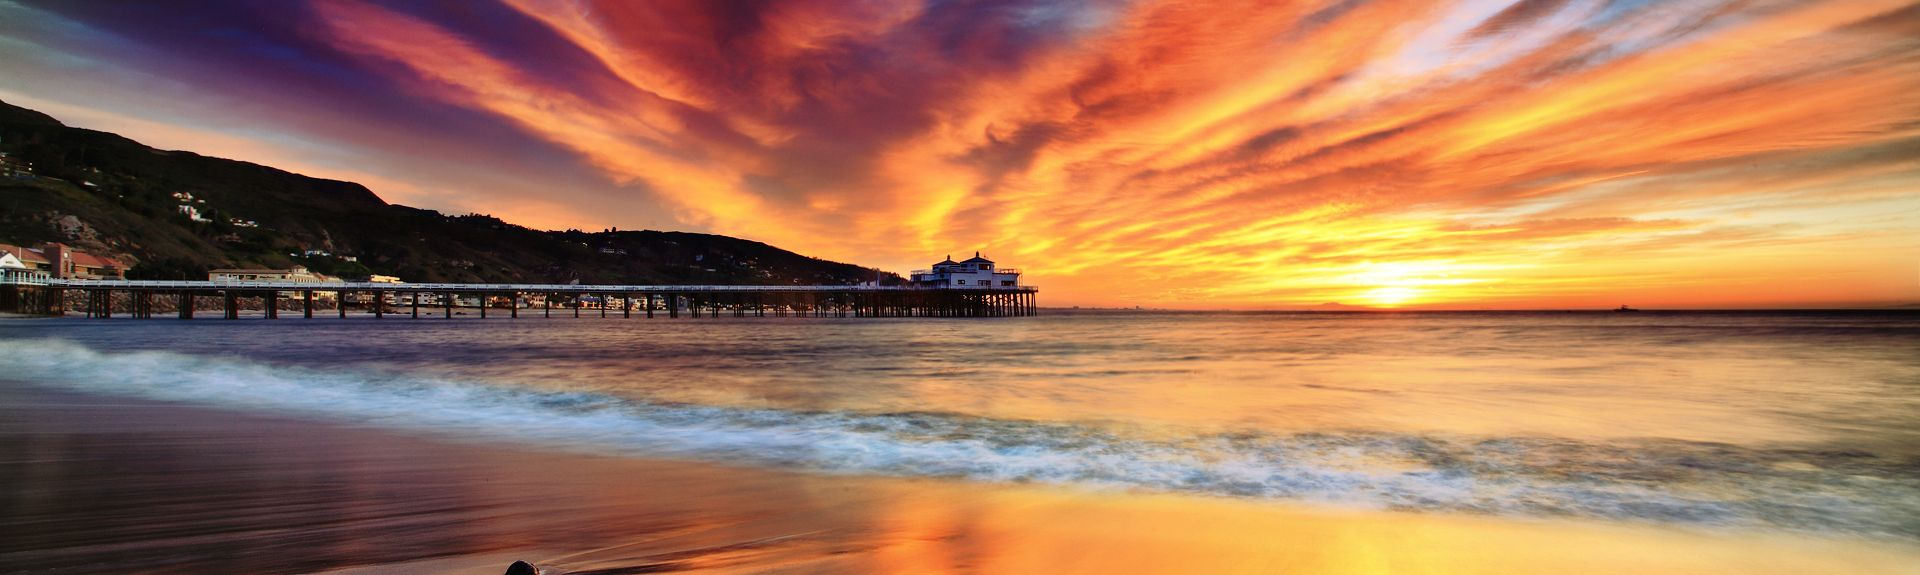 Central Malibu, Malibu, California, United States of America